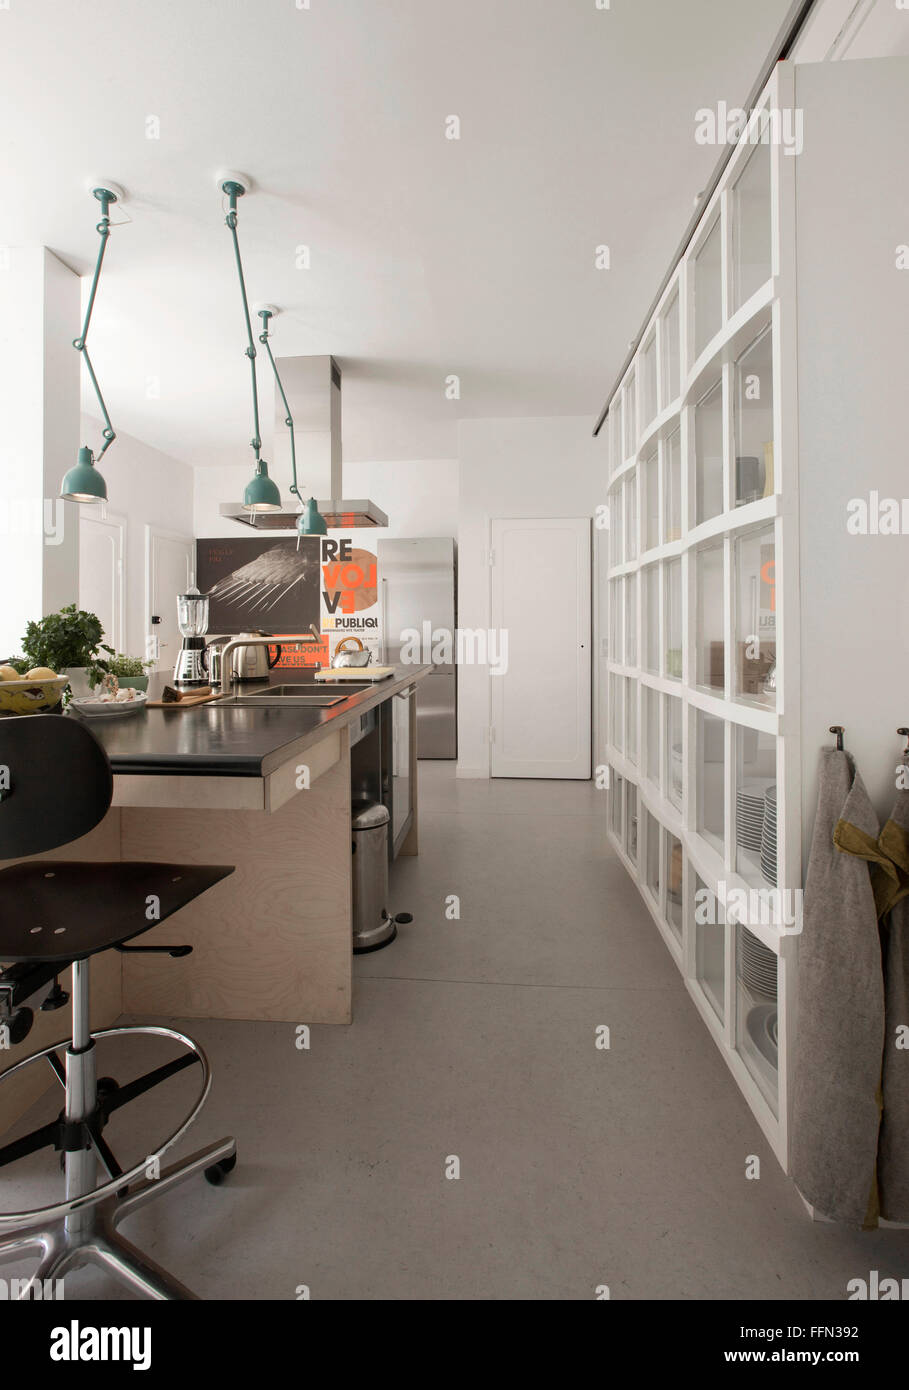 Modernism in the 'Cake House'. A minimalist kitchen. - Stock Image